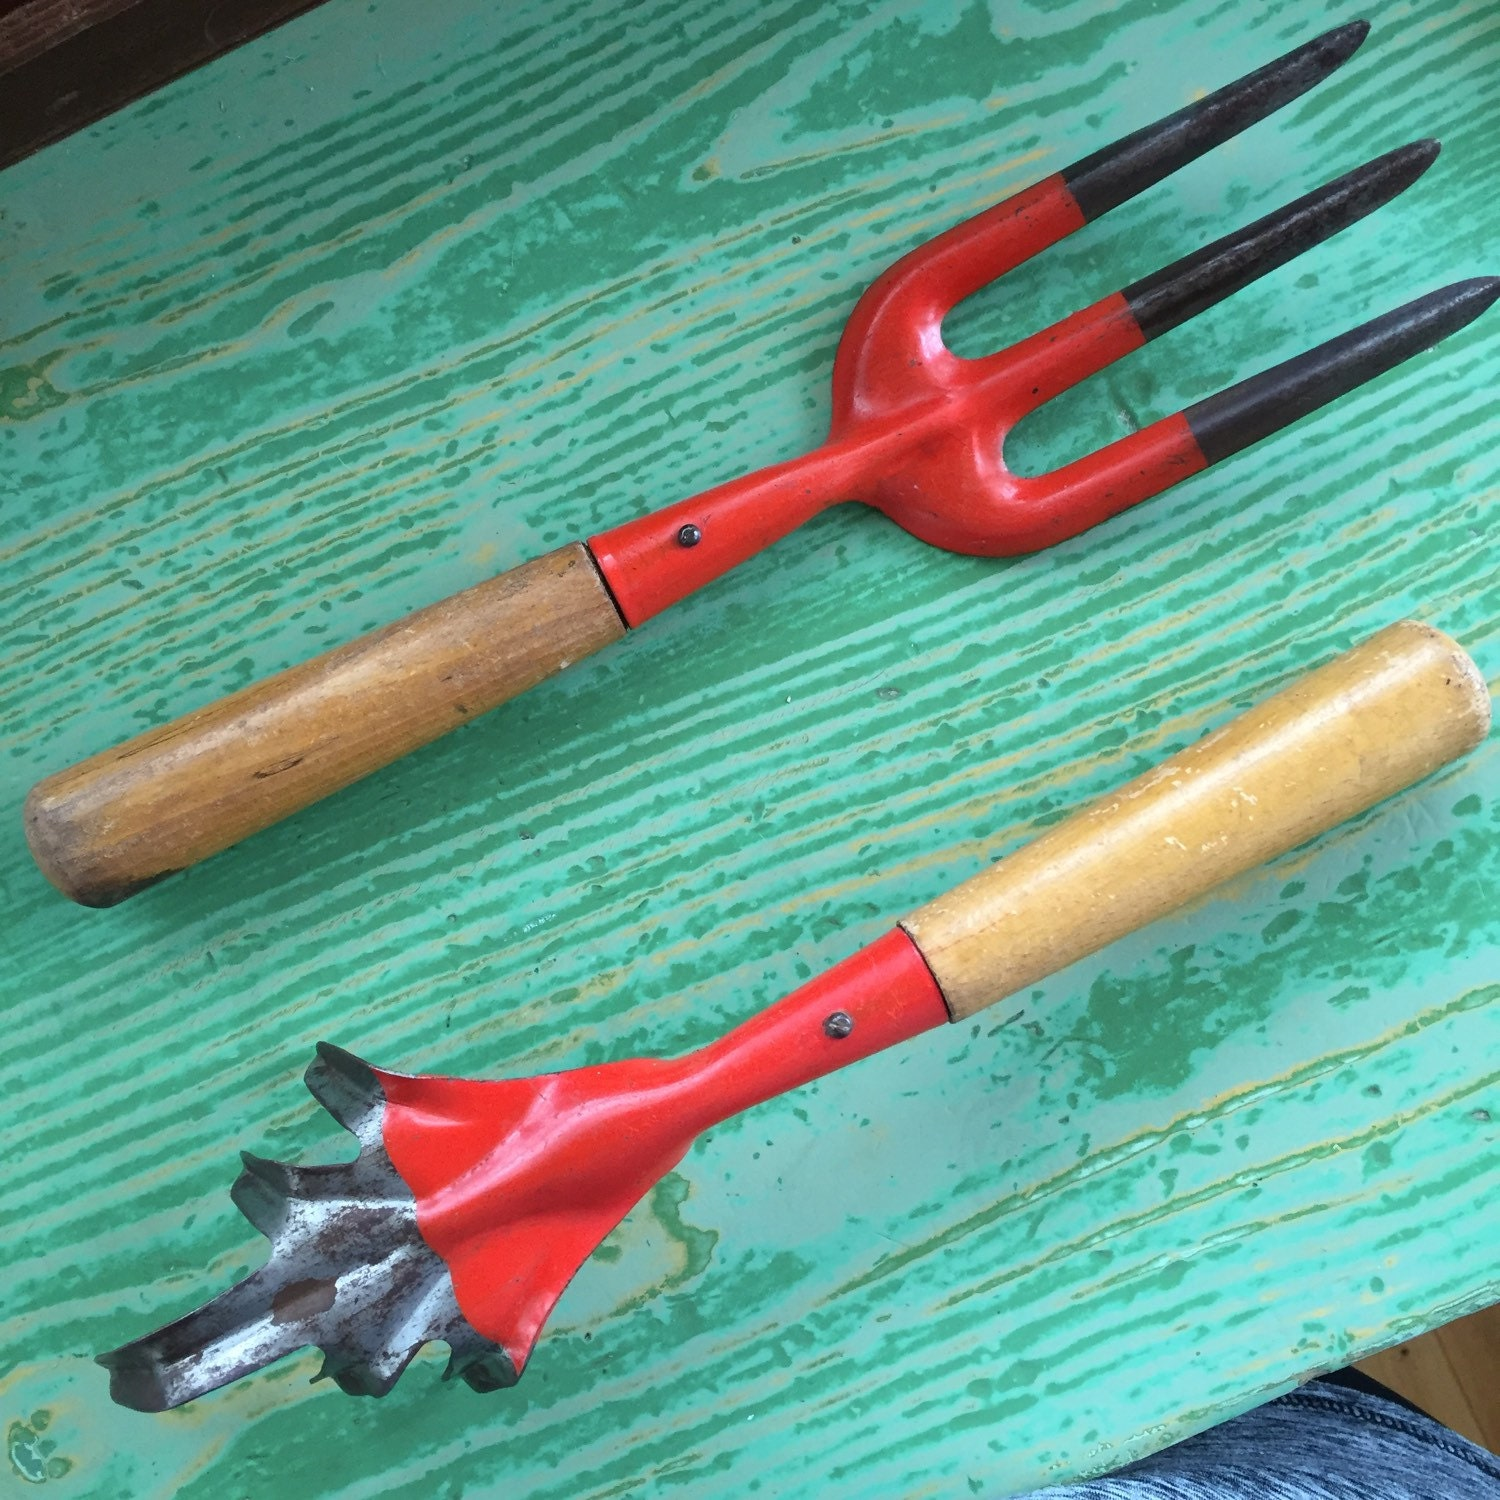 Vintage garden hand tools gardening tools 2 piece set for Common garden hand tools